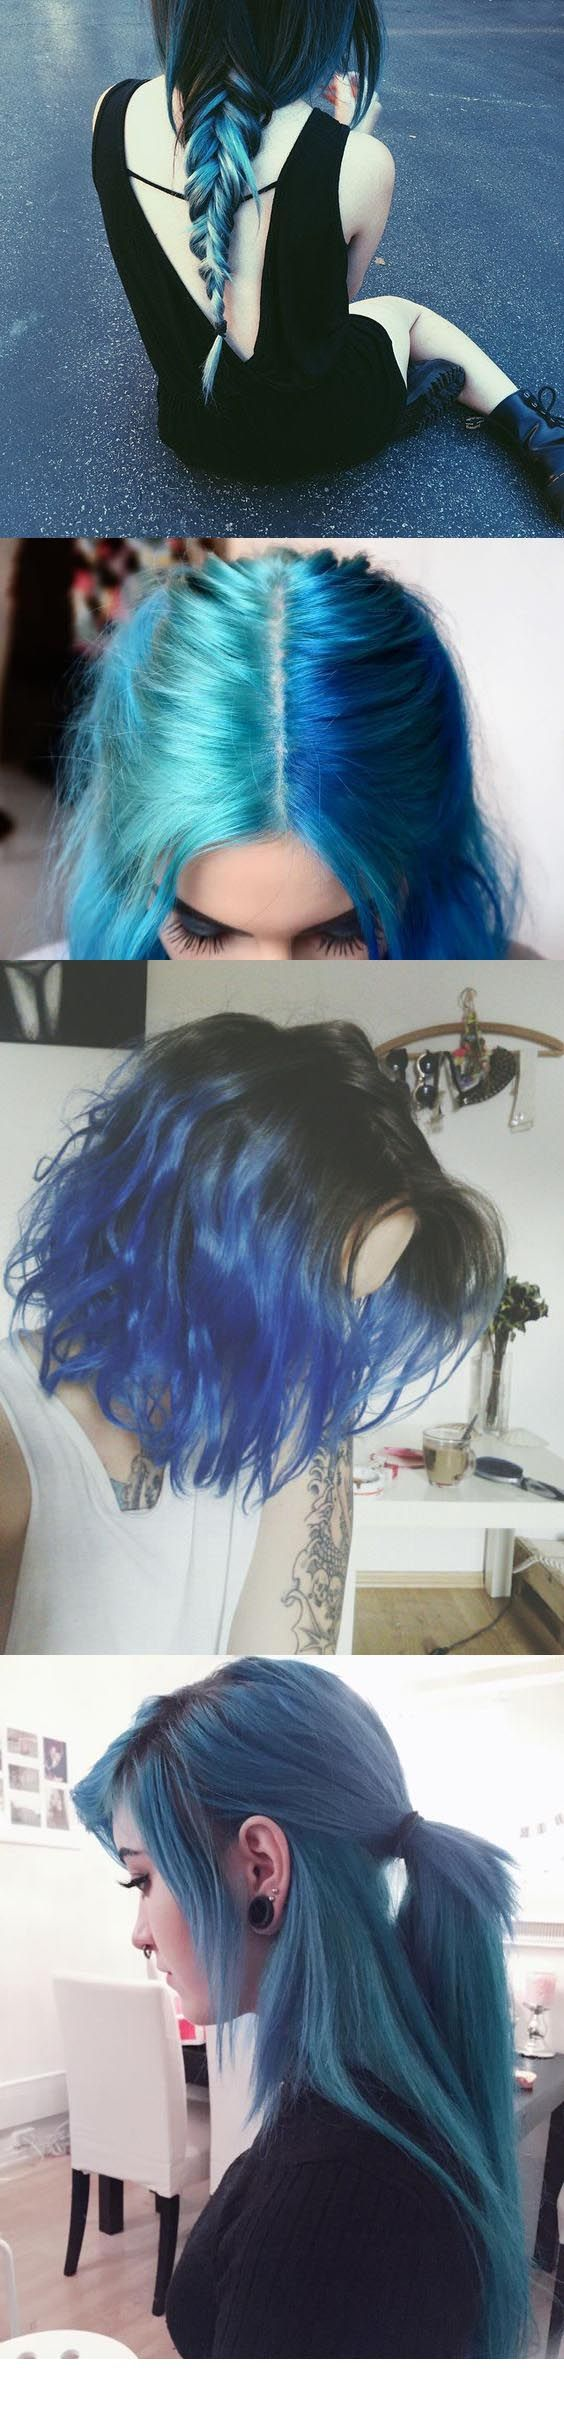 Blue hair frases pinterest blue hair hair coloring and hair style